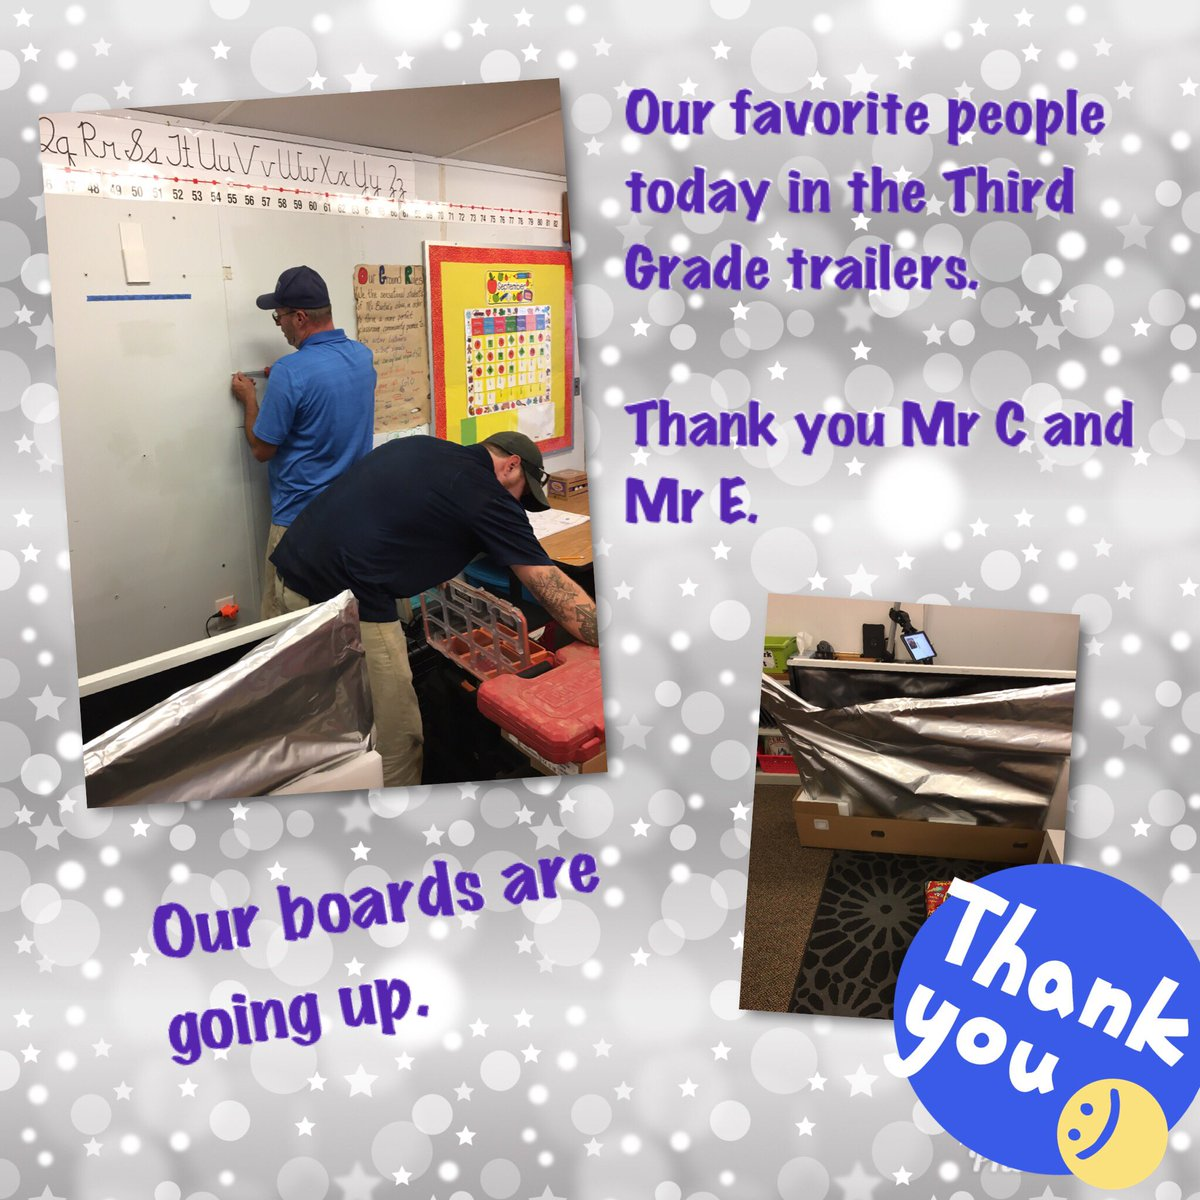 Our boards are up.  We are excited and thankful.  <a target='_blank' href='http://twitter.com/APS_ATS'>@APS_ATS</a> <a target='_blank' href='http://twitter.com/MyRedCooper'>@MyRedCooper</a> <a target='_blank' href='http://twitter.com/TechAtATS'>@TechAtATS</a> <a target='_blank' href='https://t.co/o3oizYH8Xp'>https://t.co/o3oizYH8Xp</a>